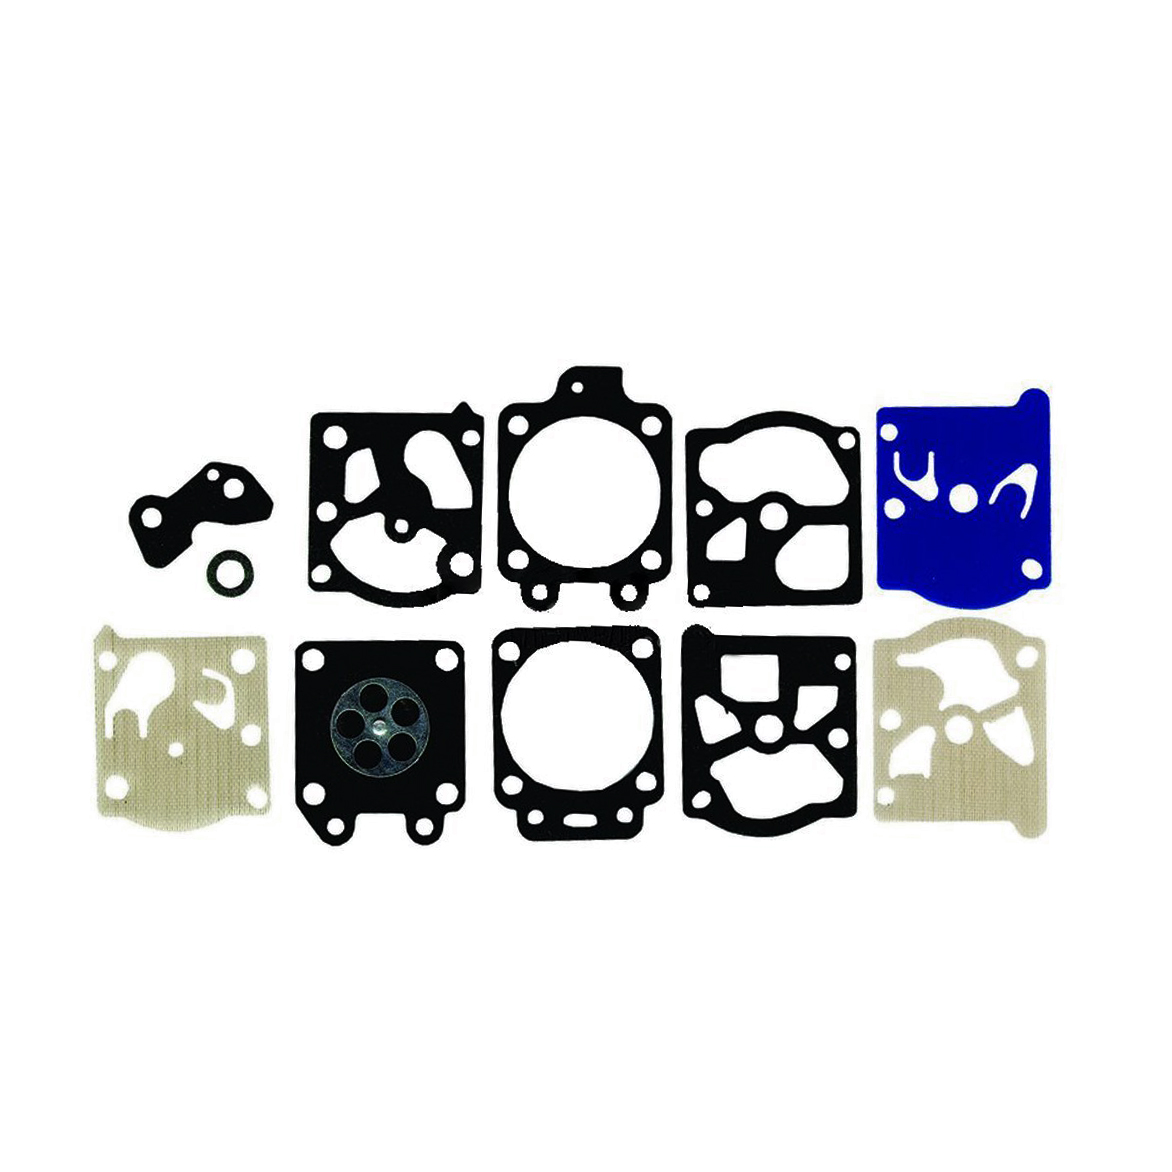 Walbro Carburetor Gasket & Diaphragm Kit D20-WAT / Fits Poulan WT-628-1 WT-629-1 WT-369-1 & Other Chainsaw Carburetors